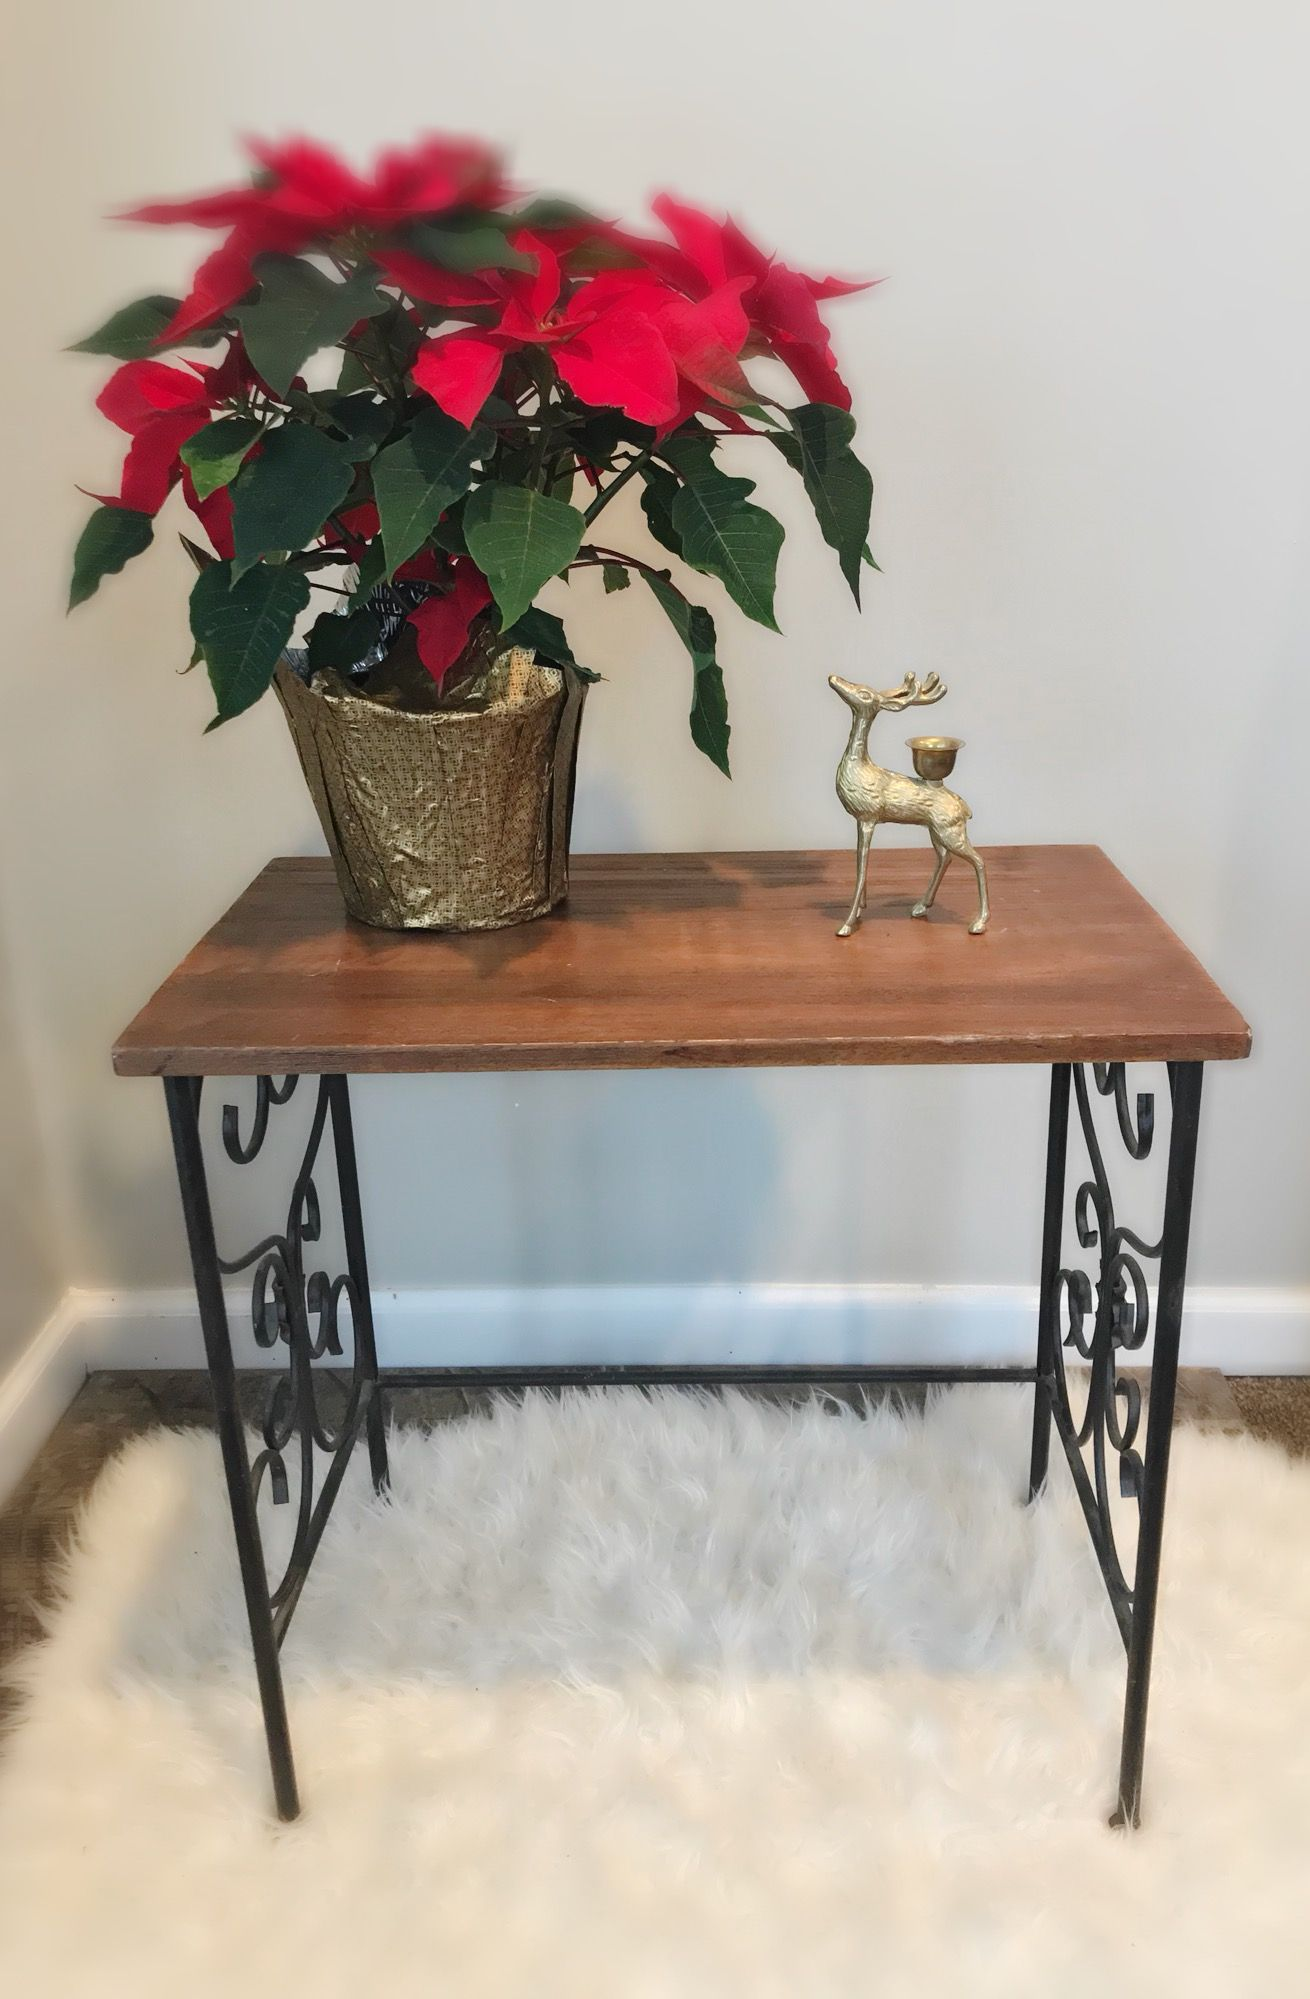 Adorable wooden table with metal legs rustic vintage